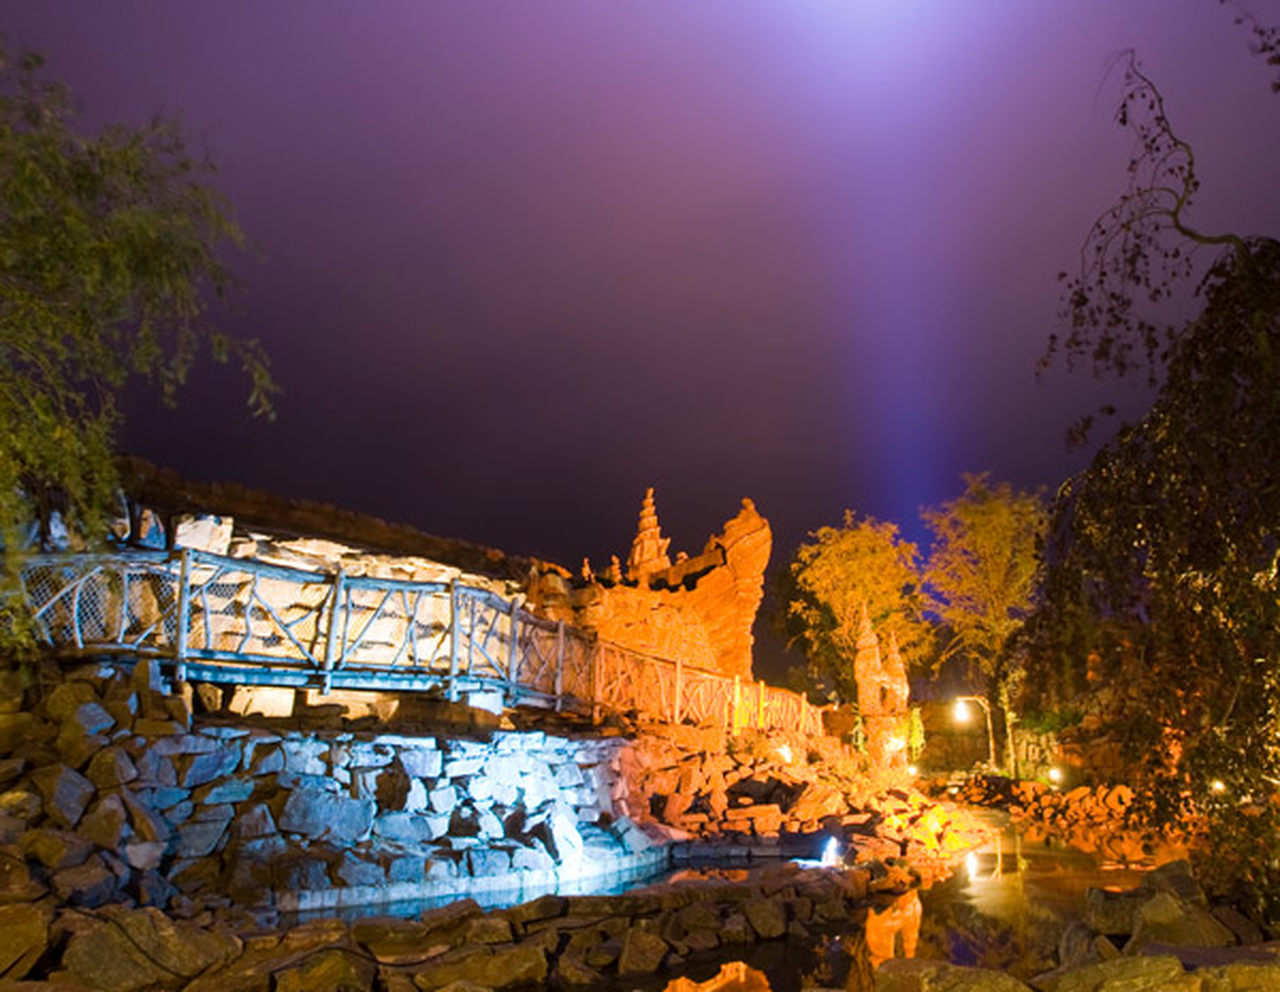 The outside lighting of the Magical Valley area at Toverland